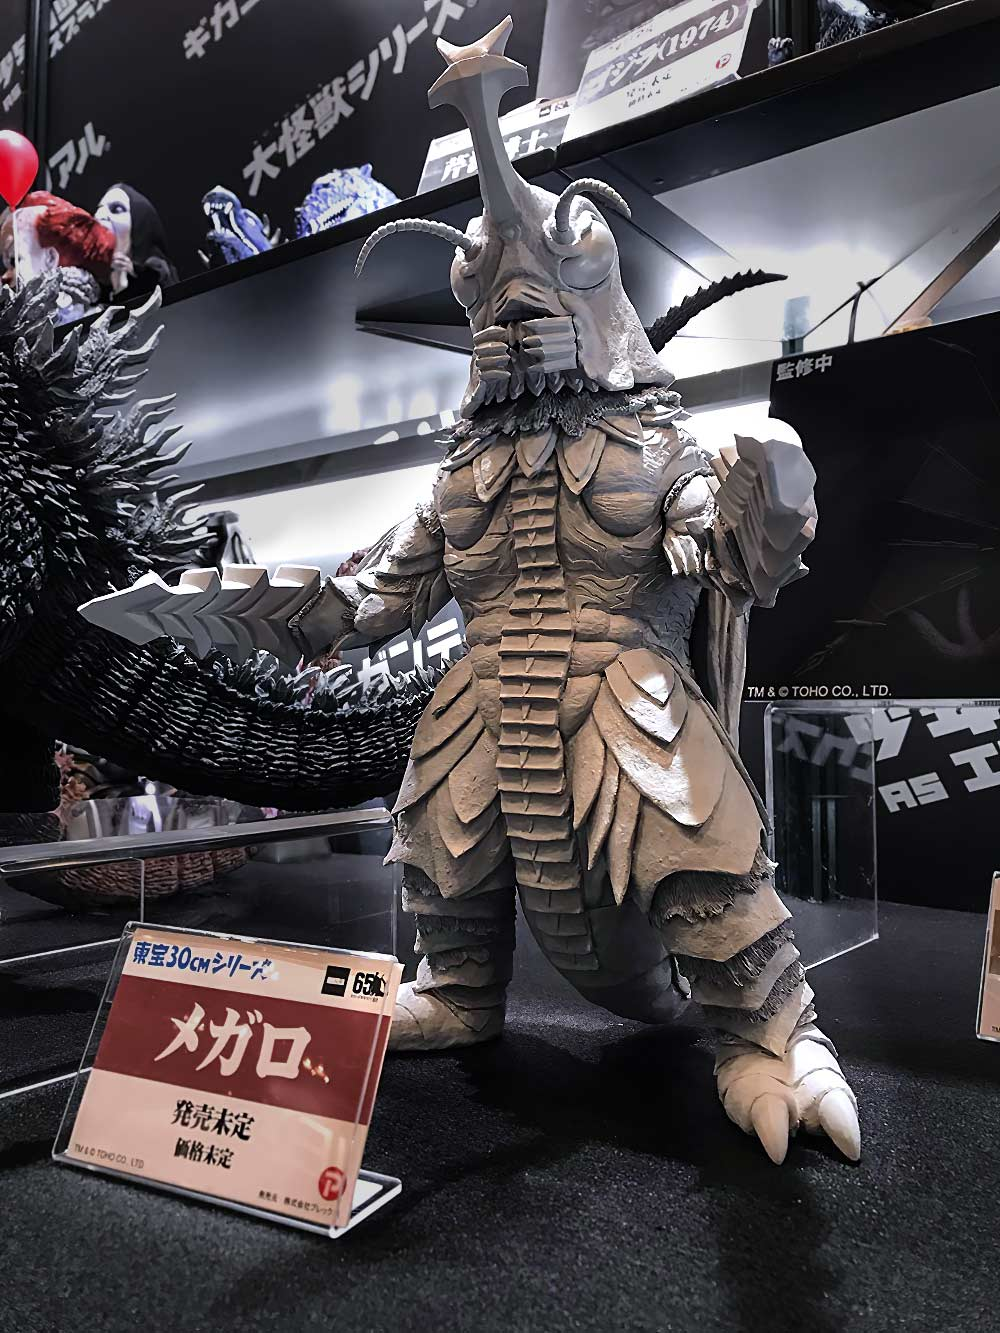 30cm Series Megalon vinyl figure by X-Plus on display at Winter Wonderfestival.